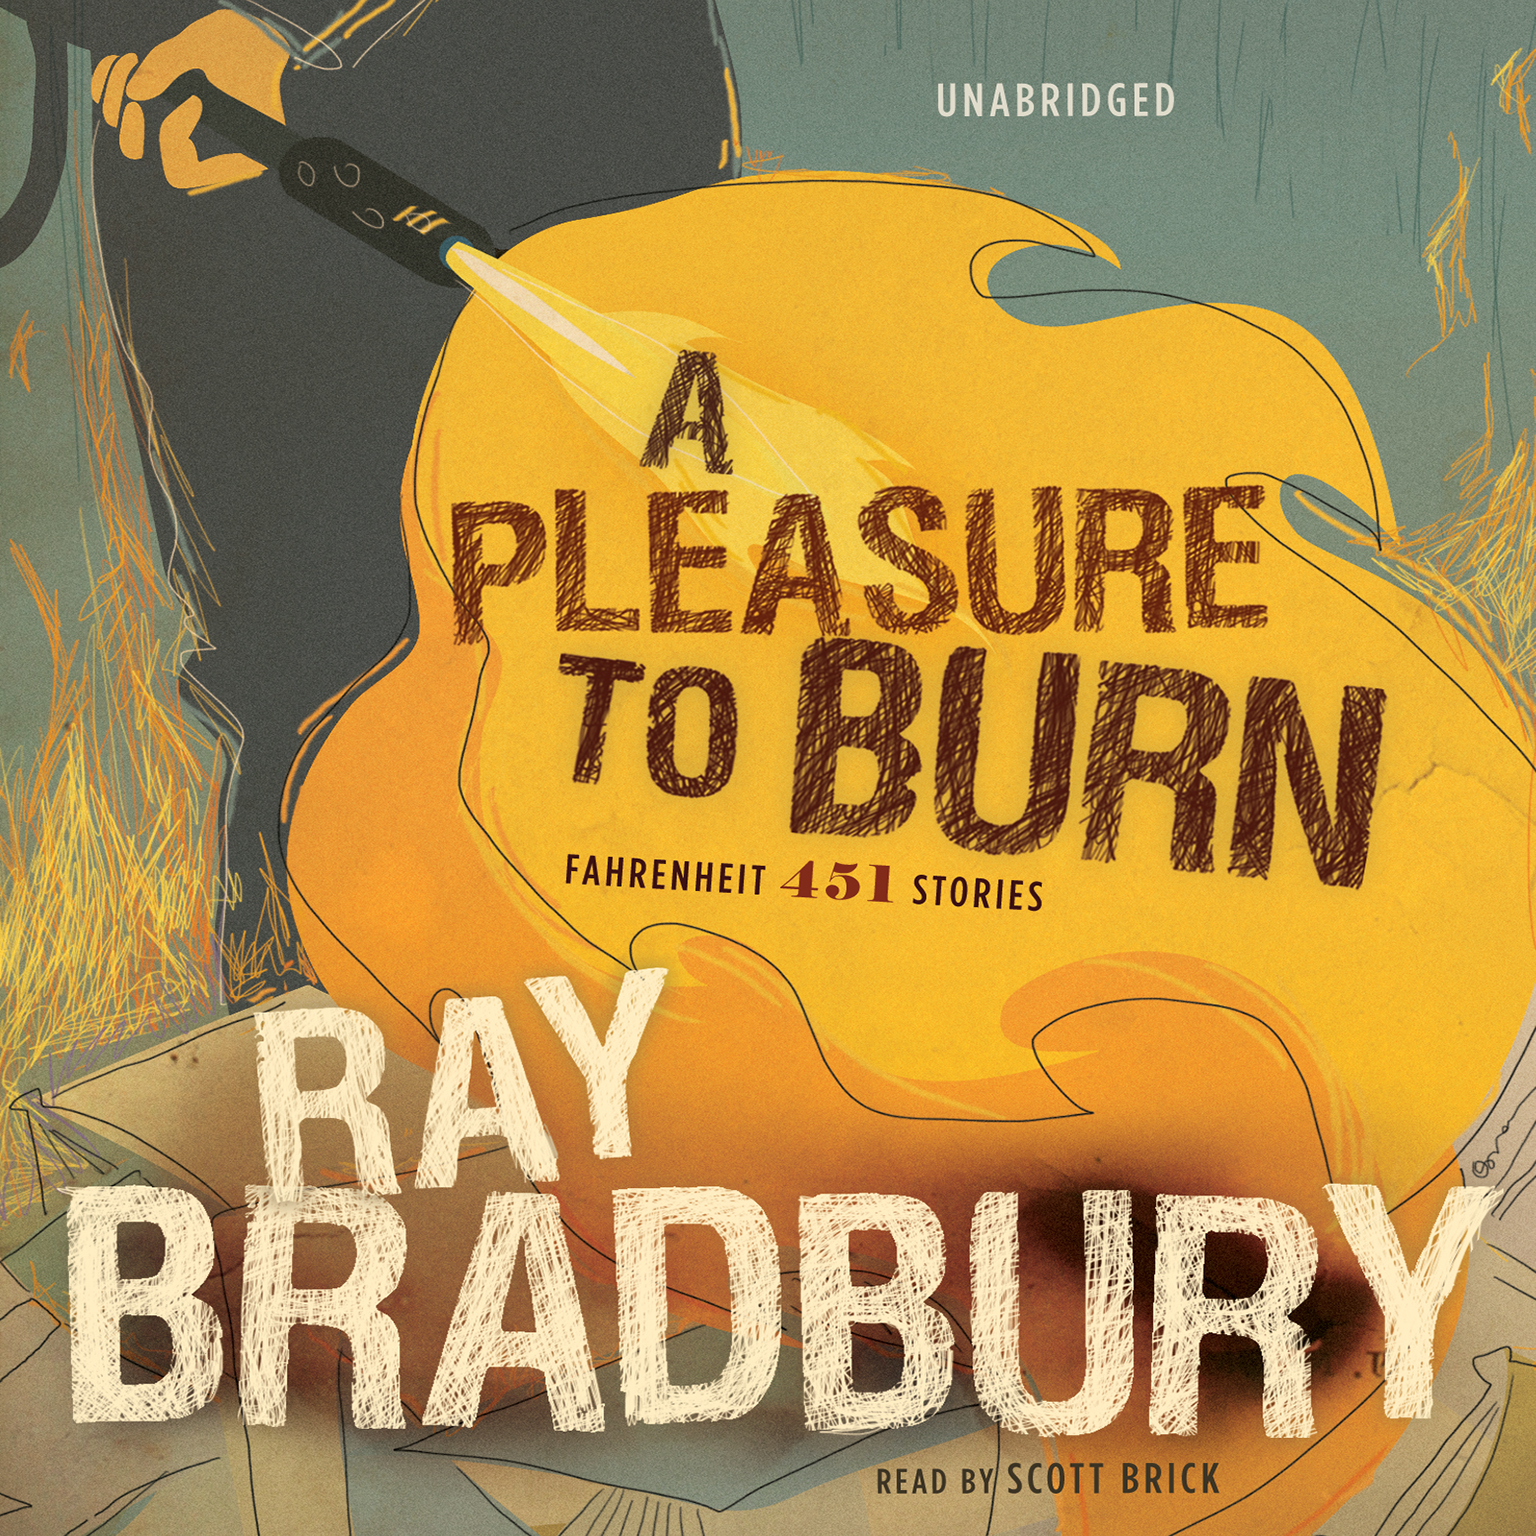 fahrenheit 451 ray bradbury pdf download